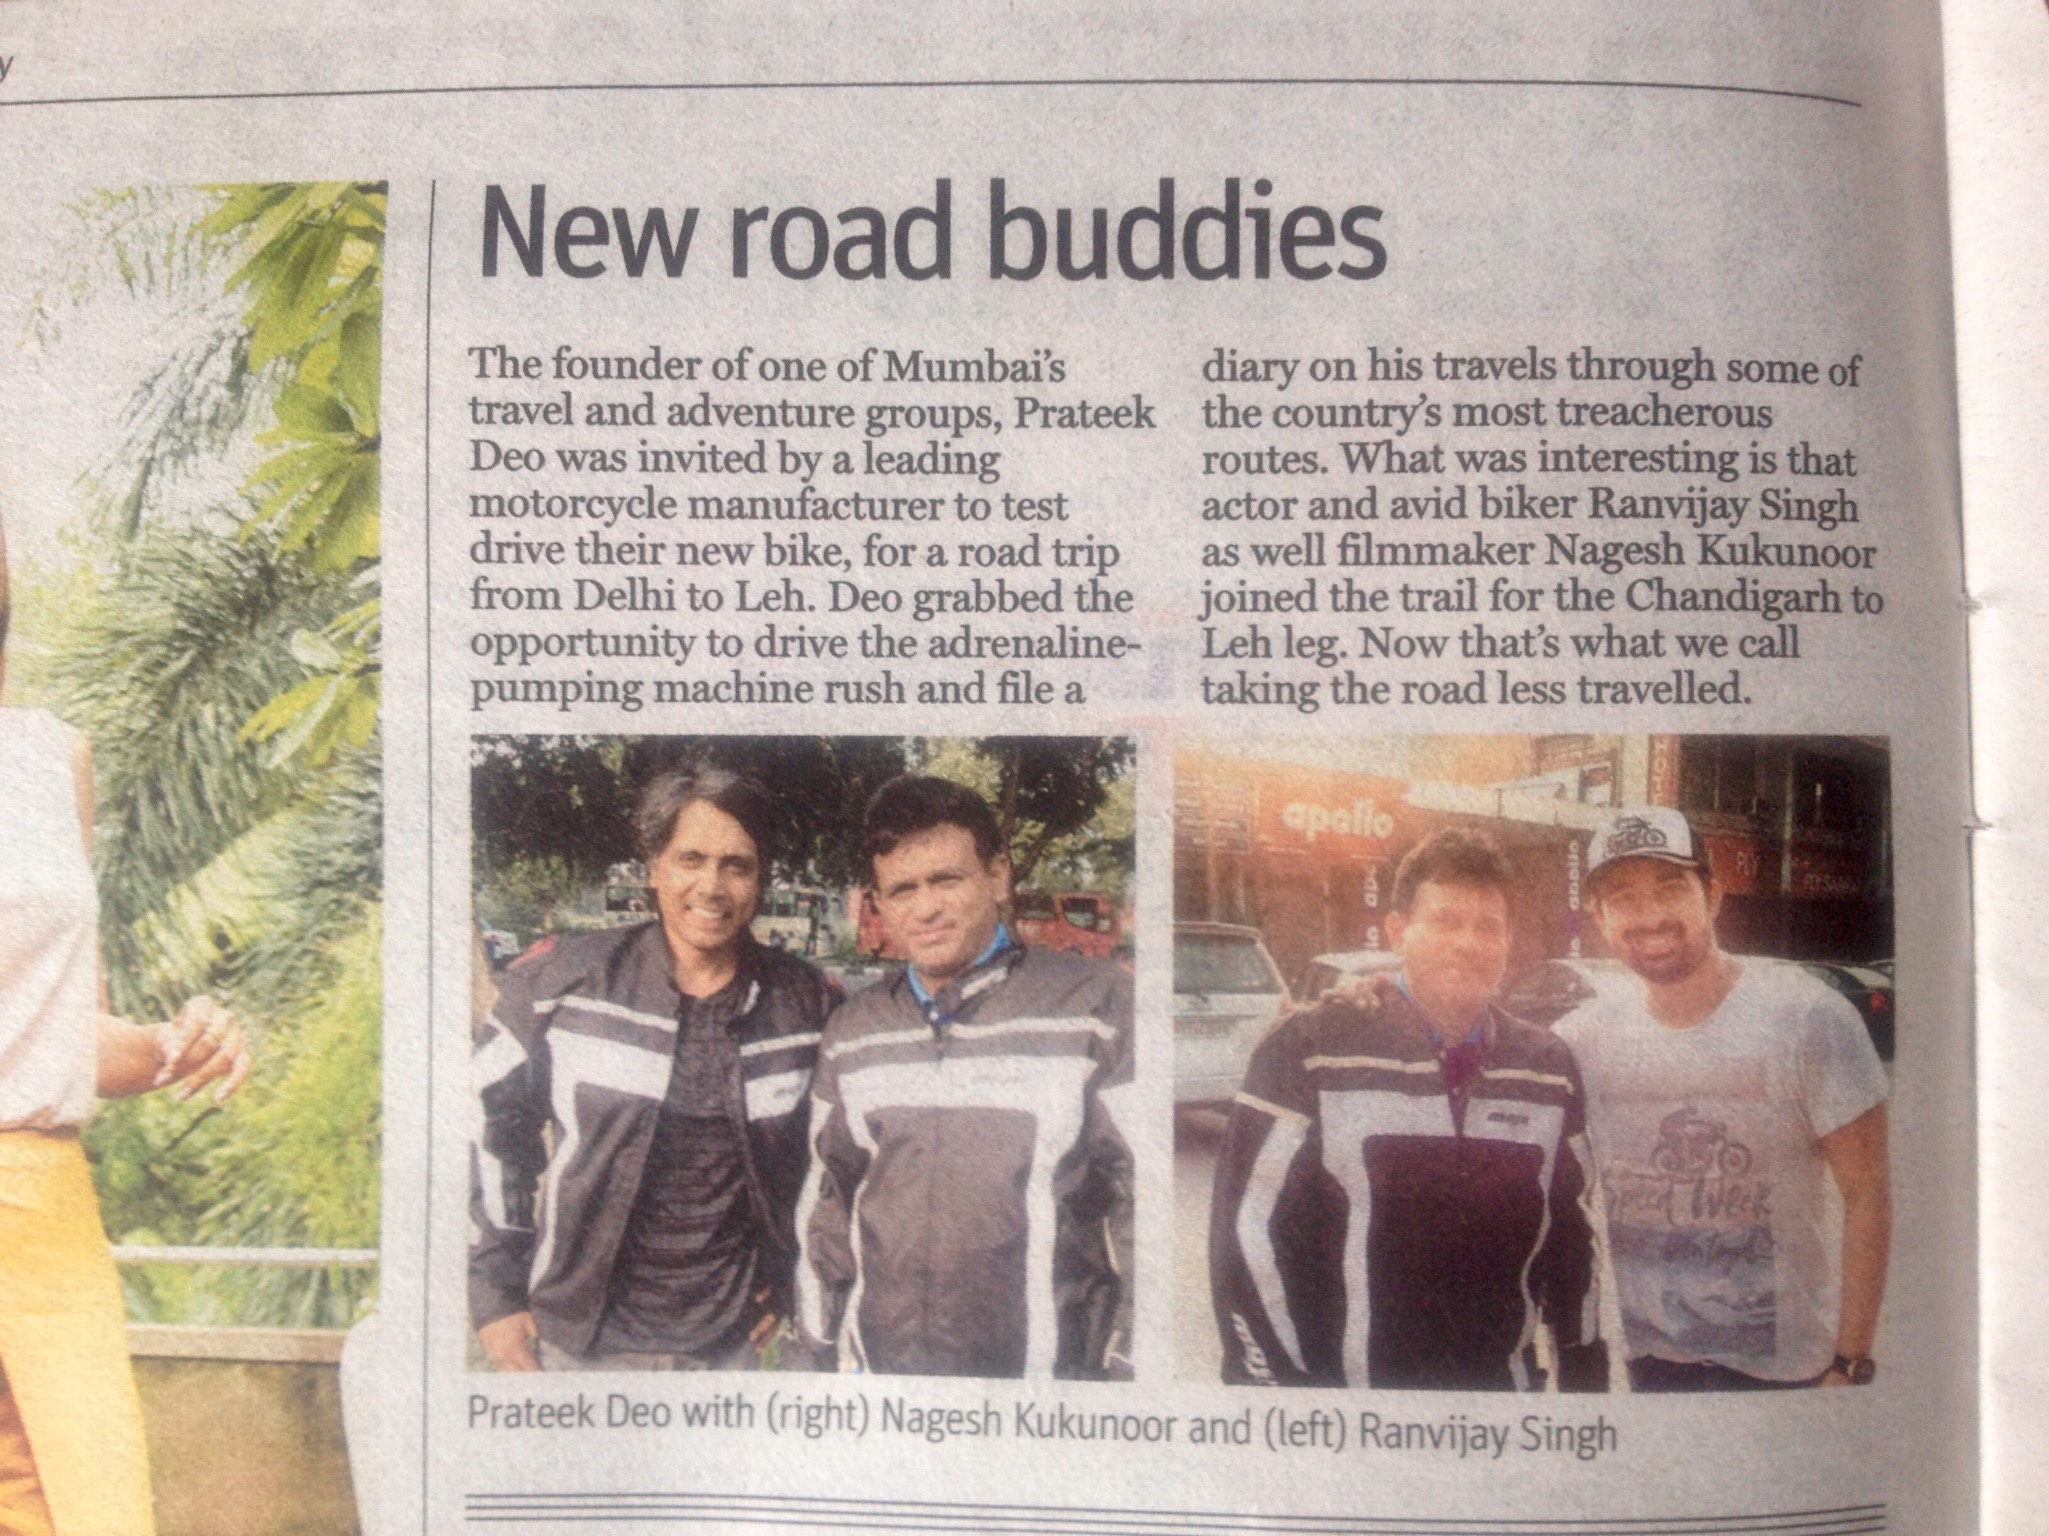 In the News - Riding with Ranvijay & Nagesh Kuknoor